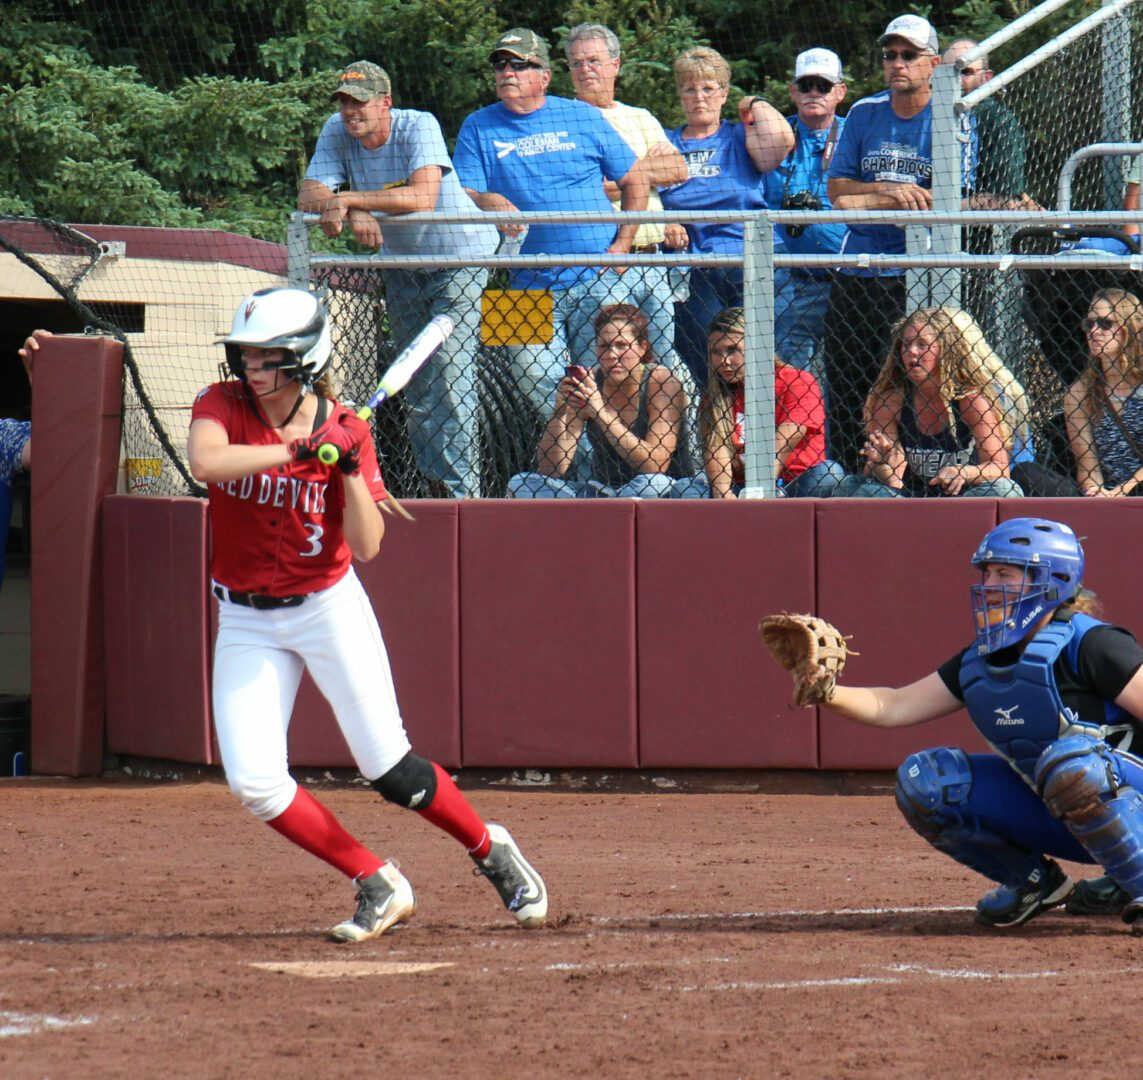 Holton's Mikaela Baker gets read to swing at a pitch. Photo/Dave Hart